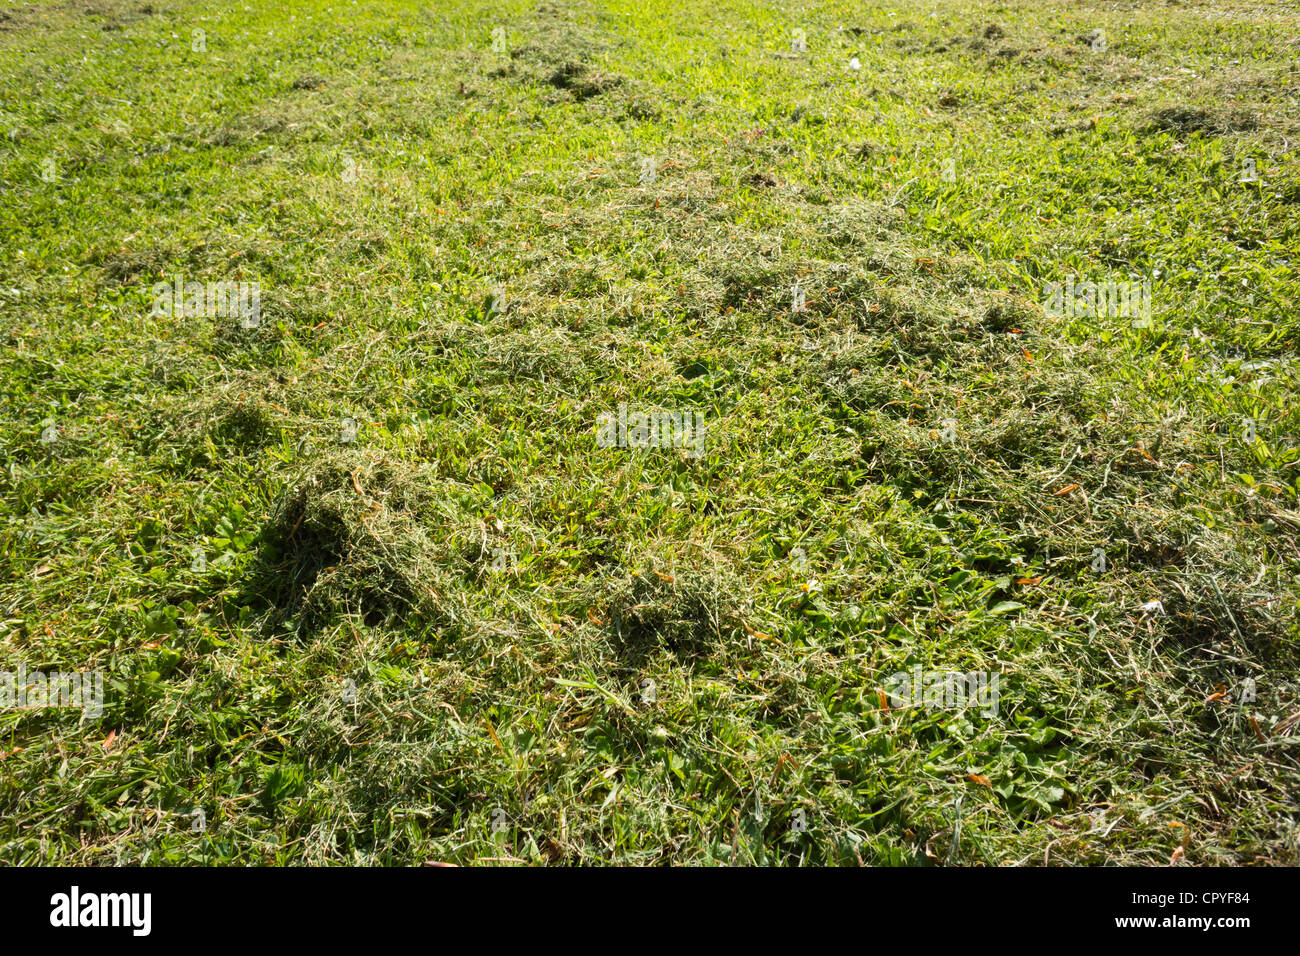 New mown grass lawn - Stock Image